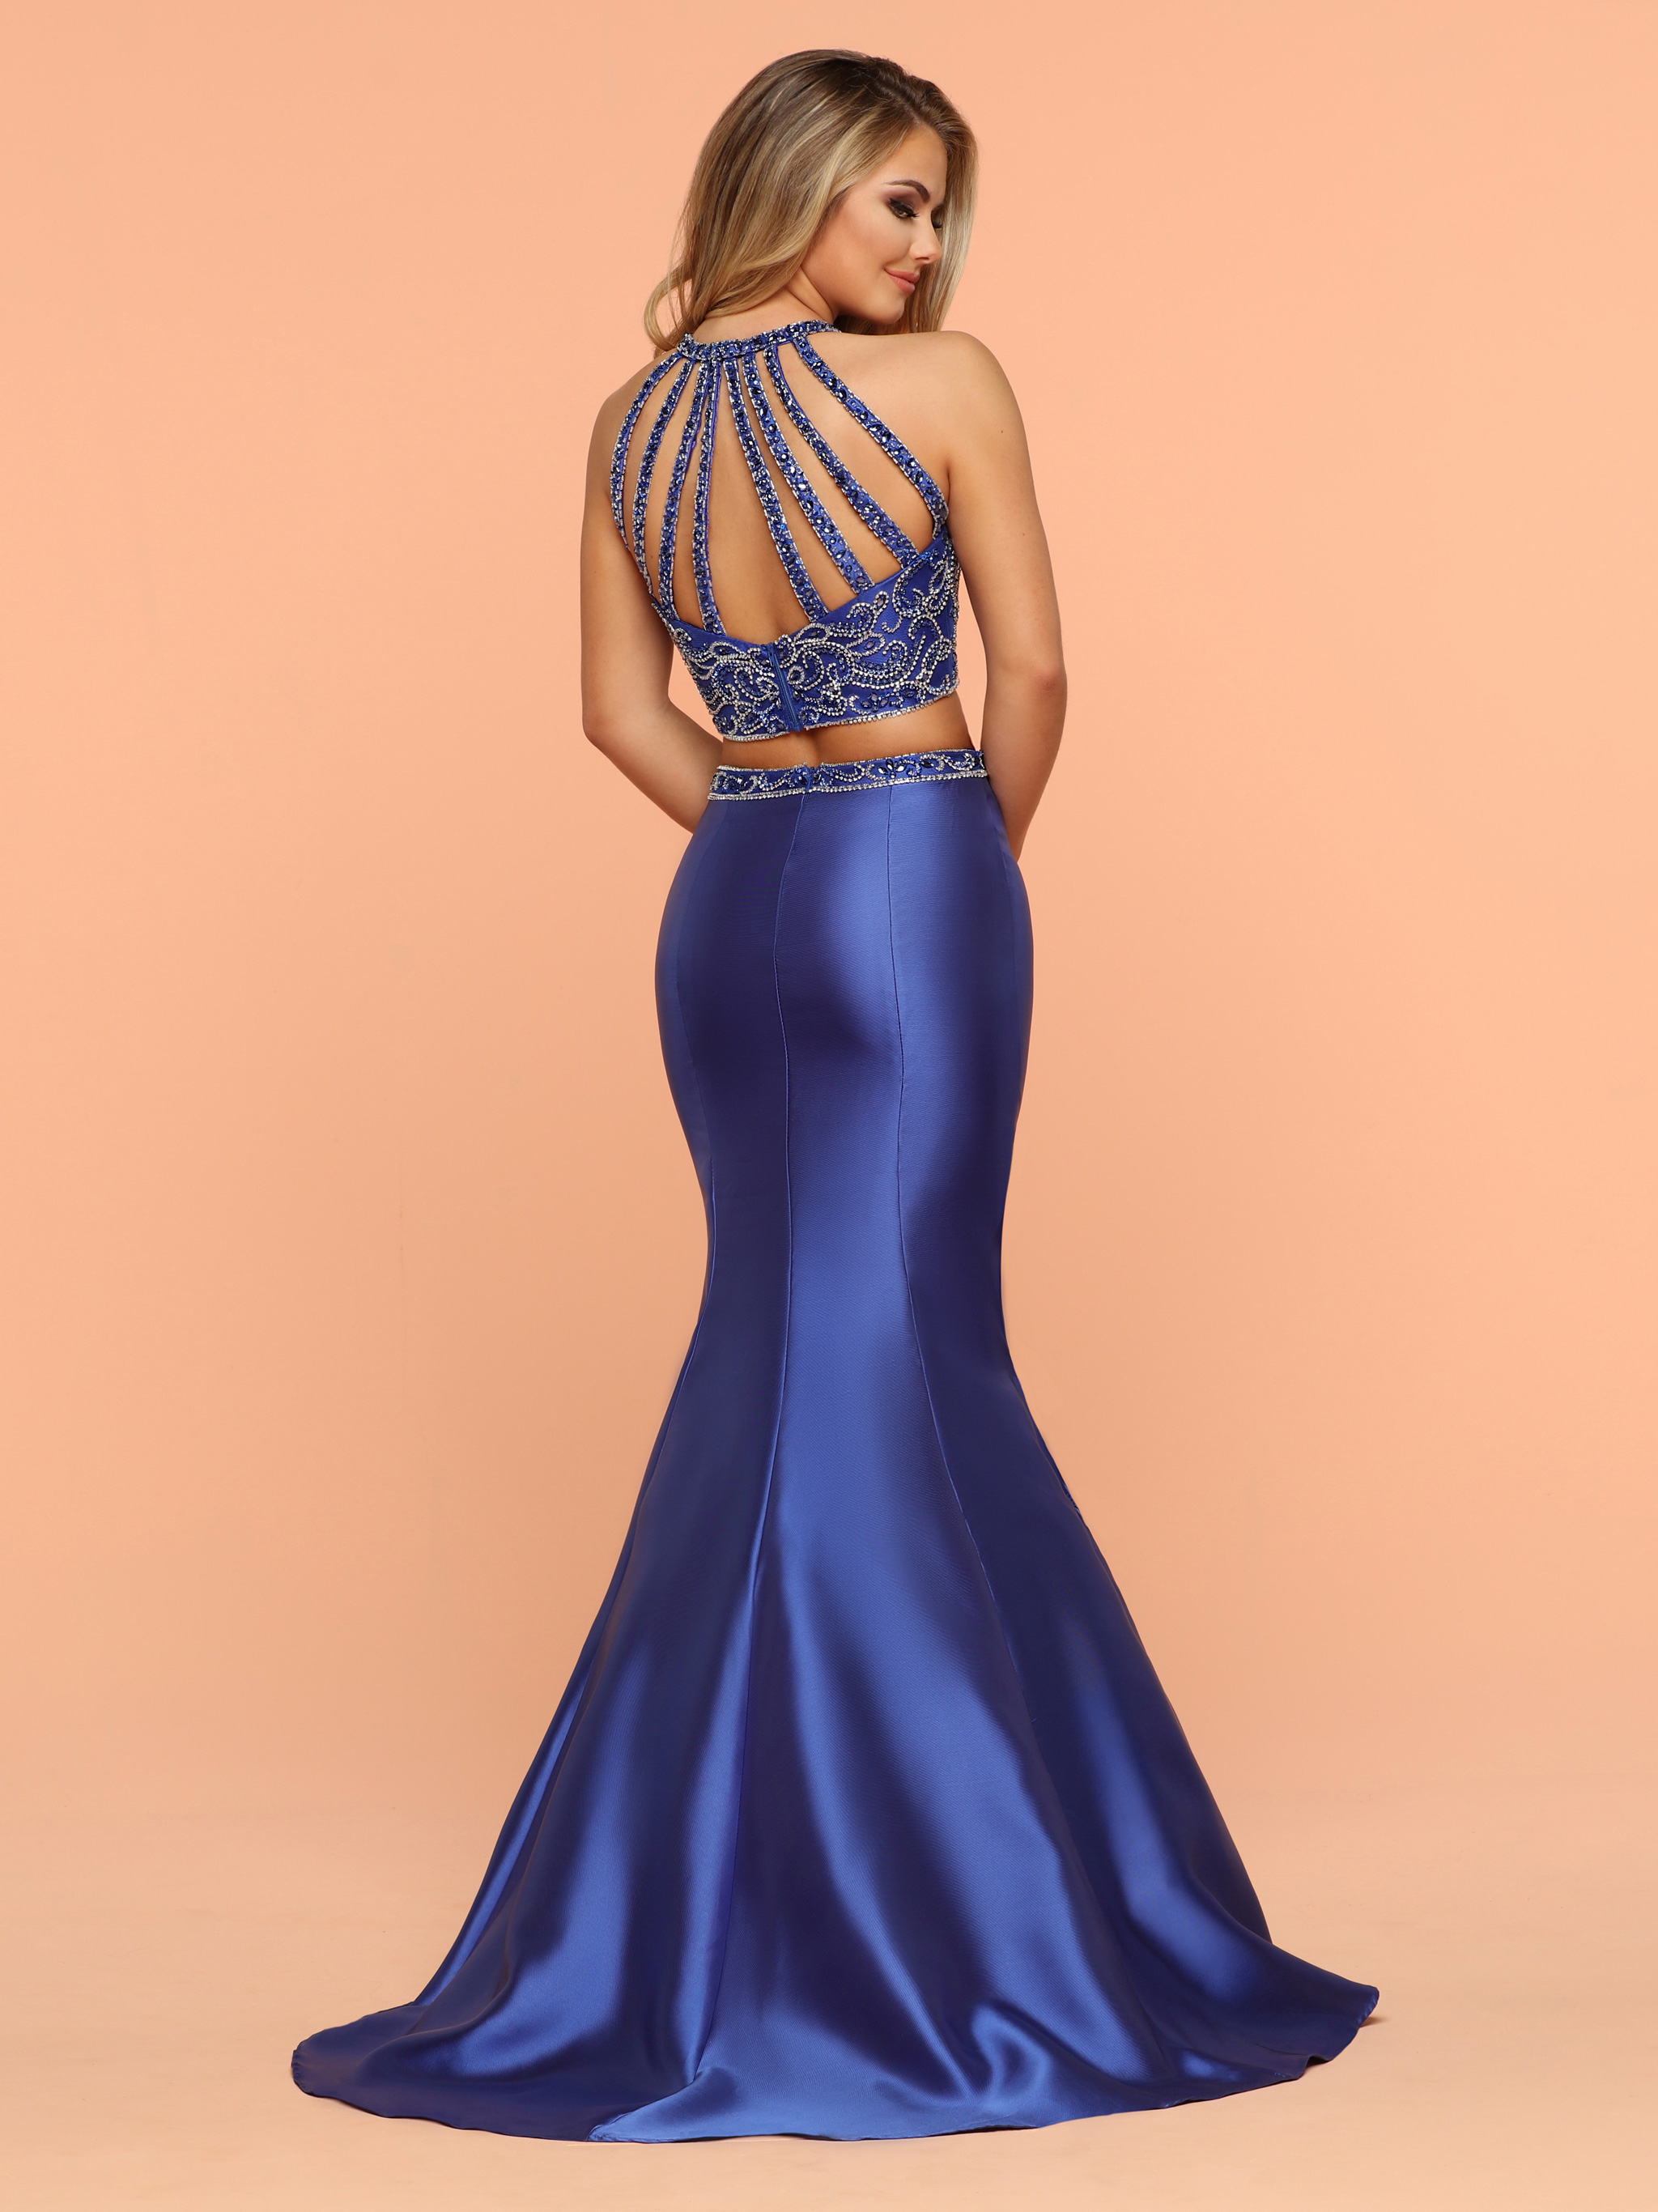 Image showing back view of style #71892